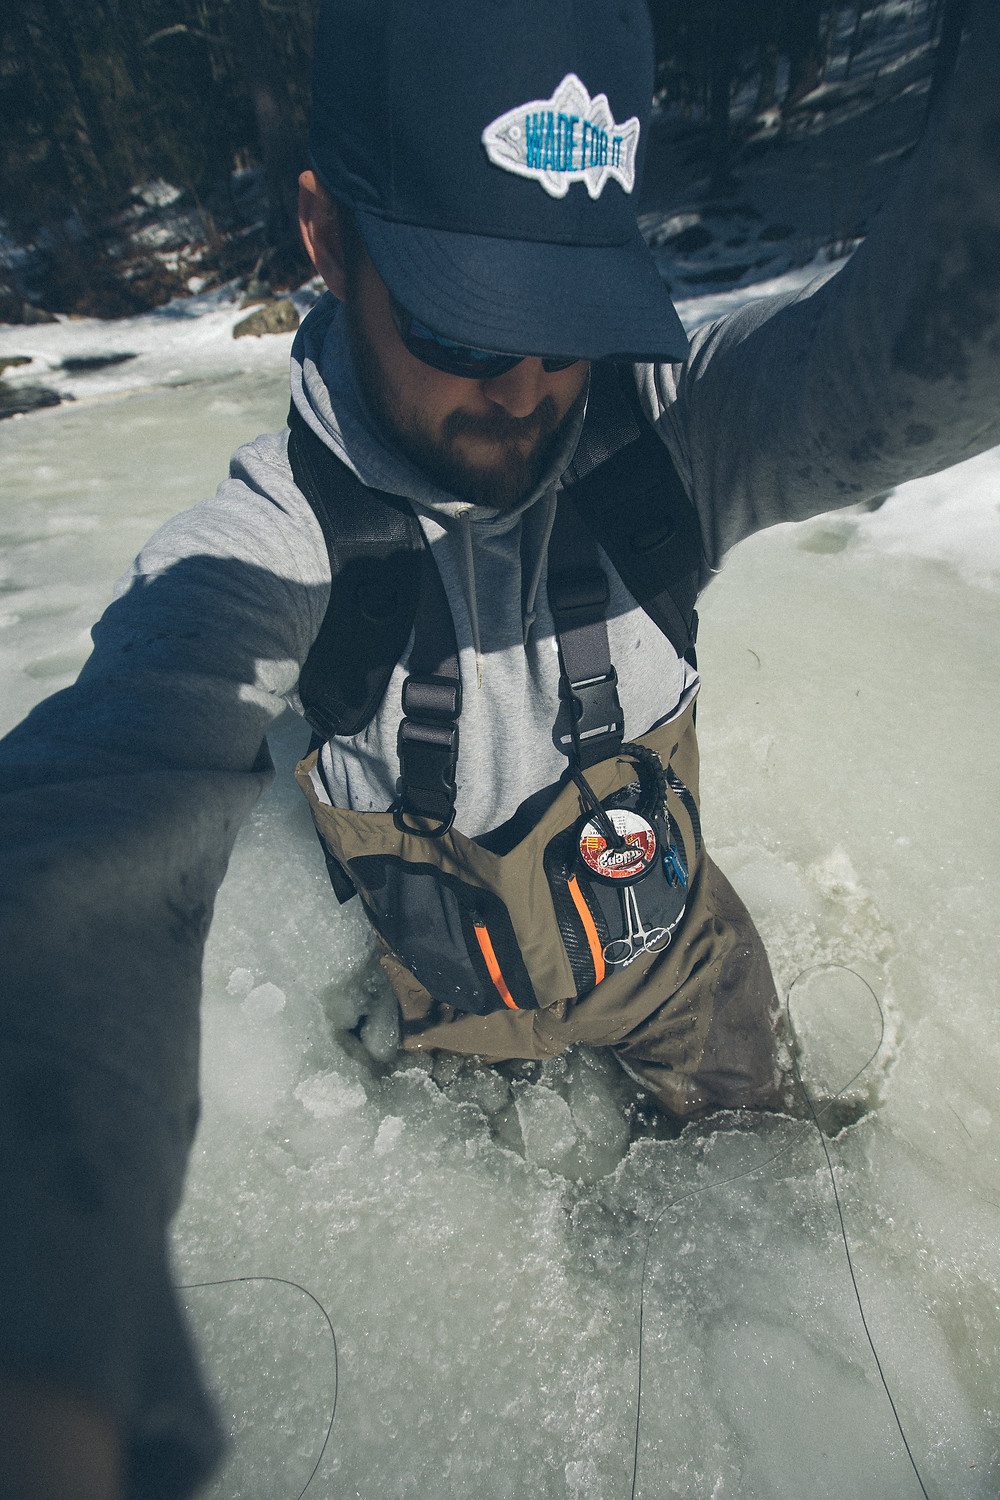 After falling into the ice Ben Duchesney had to snap a photograph before getting out.